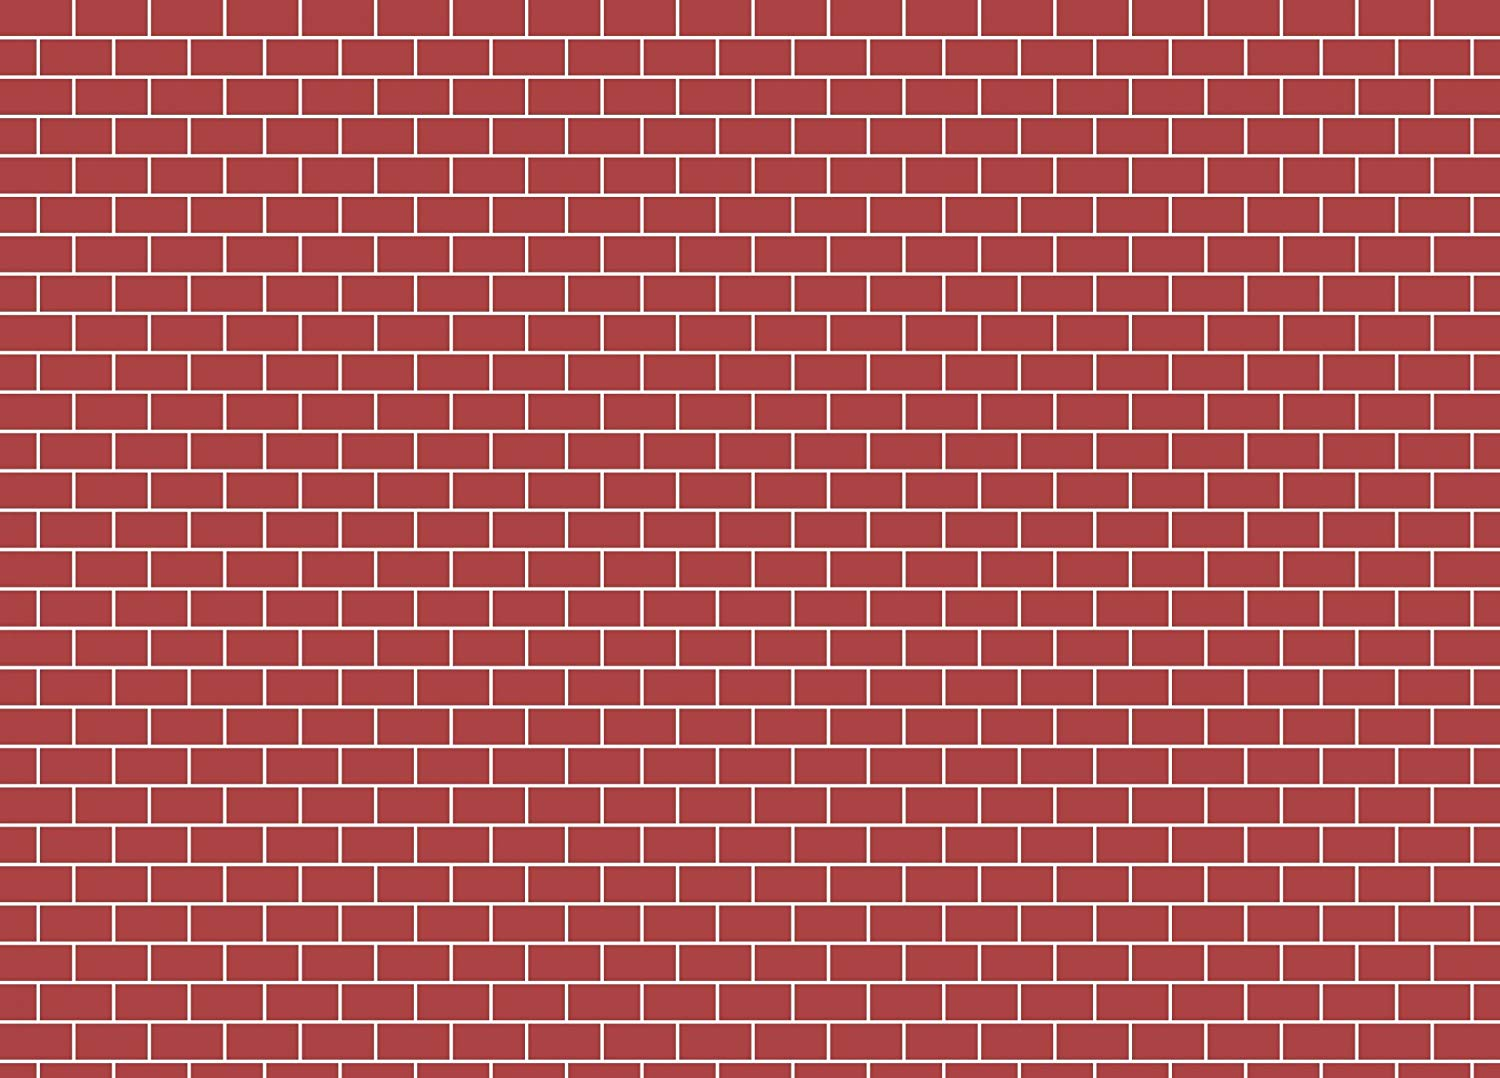 Red brick wall clipart banner transparent stock Amazon.com: Home Comforts LAMINATED POSTER Red Brick Wall ... banner transparent stock